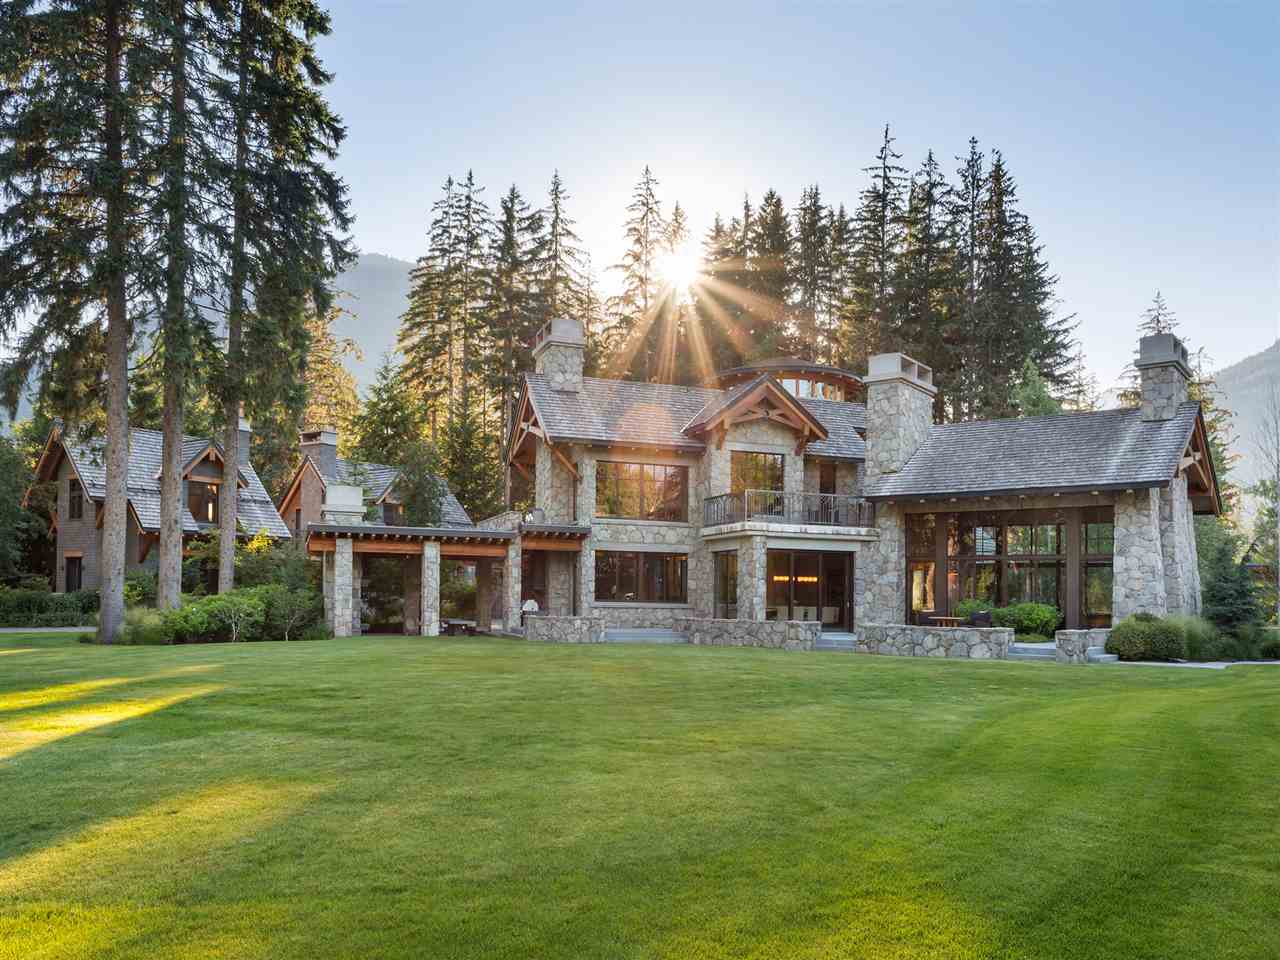 6715 CRABAPPLE DRIVE - Whistler Cay Estates House with Acreage for sale, 8 Bedrooms (R2525107)